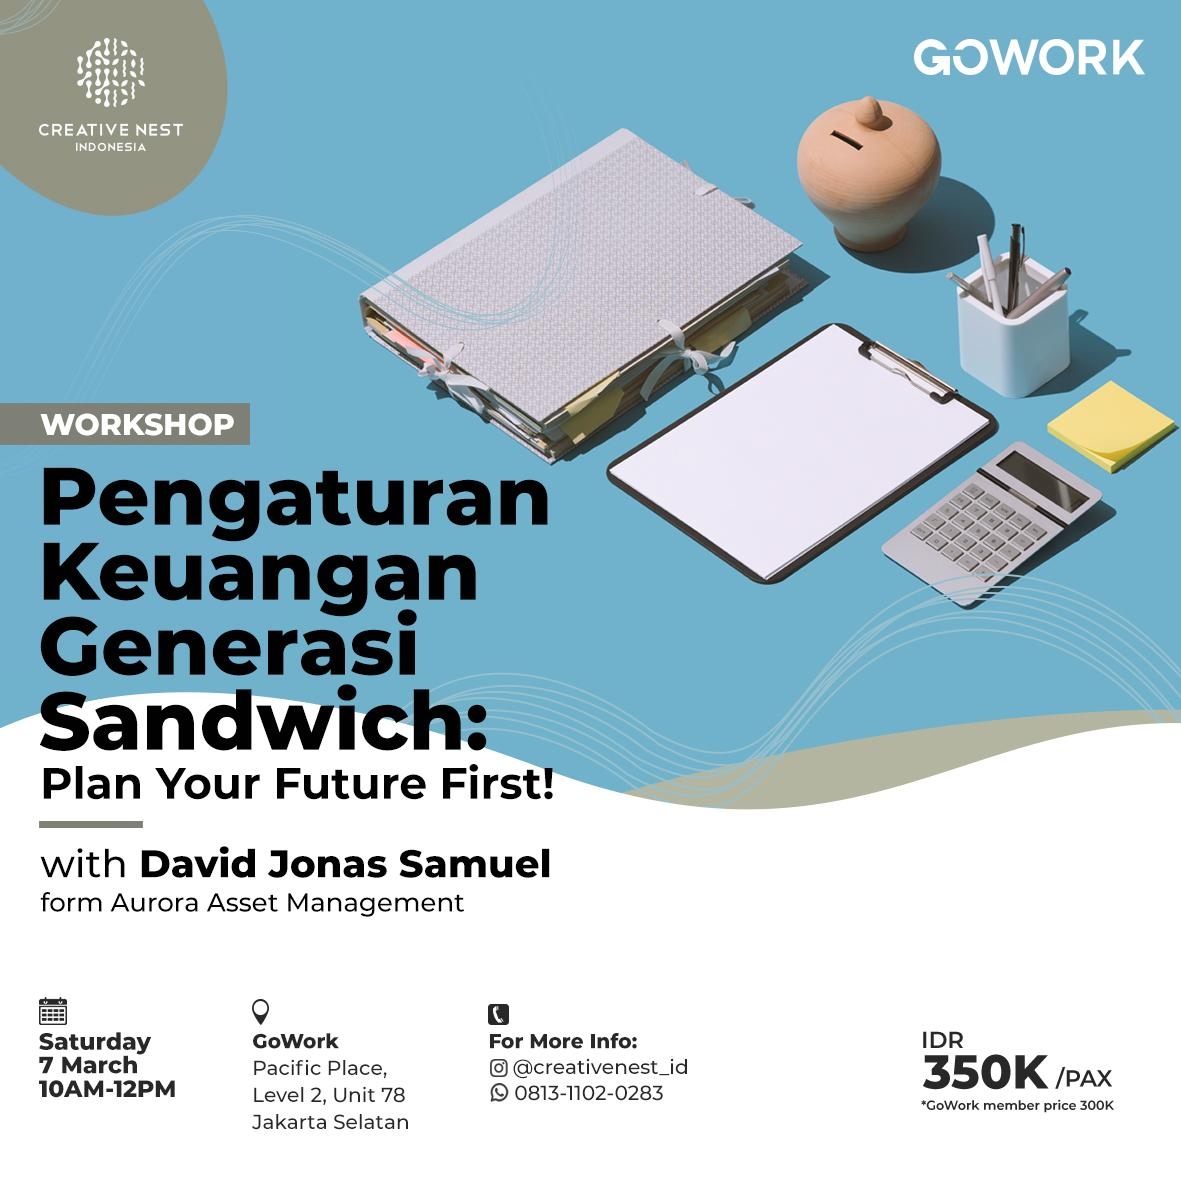 Pengaturan Keuangan Generasi Sandwich: Plan Your Future First!